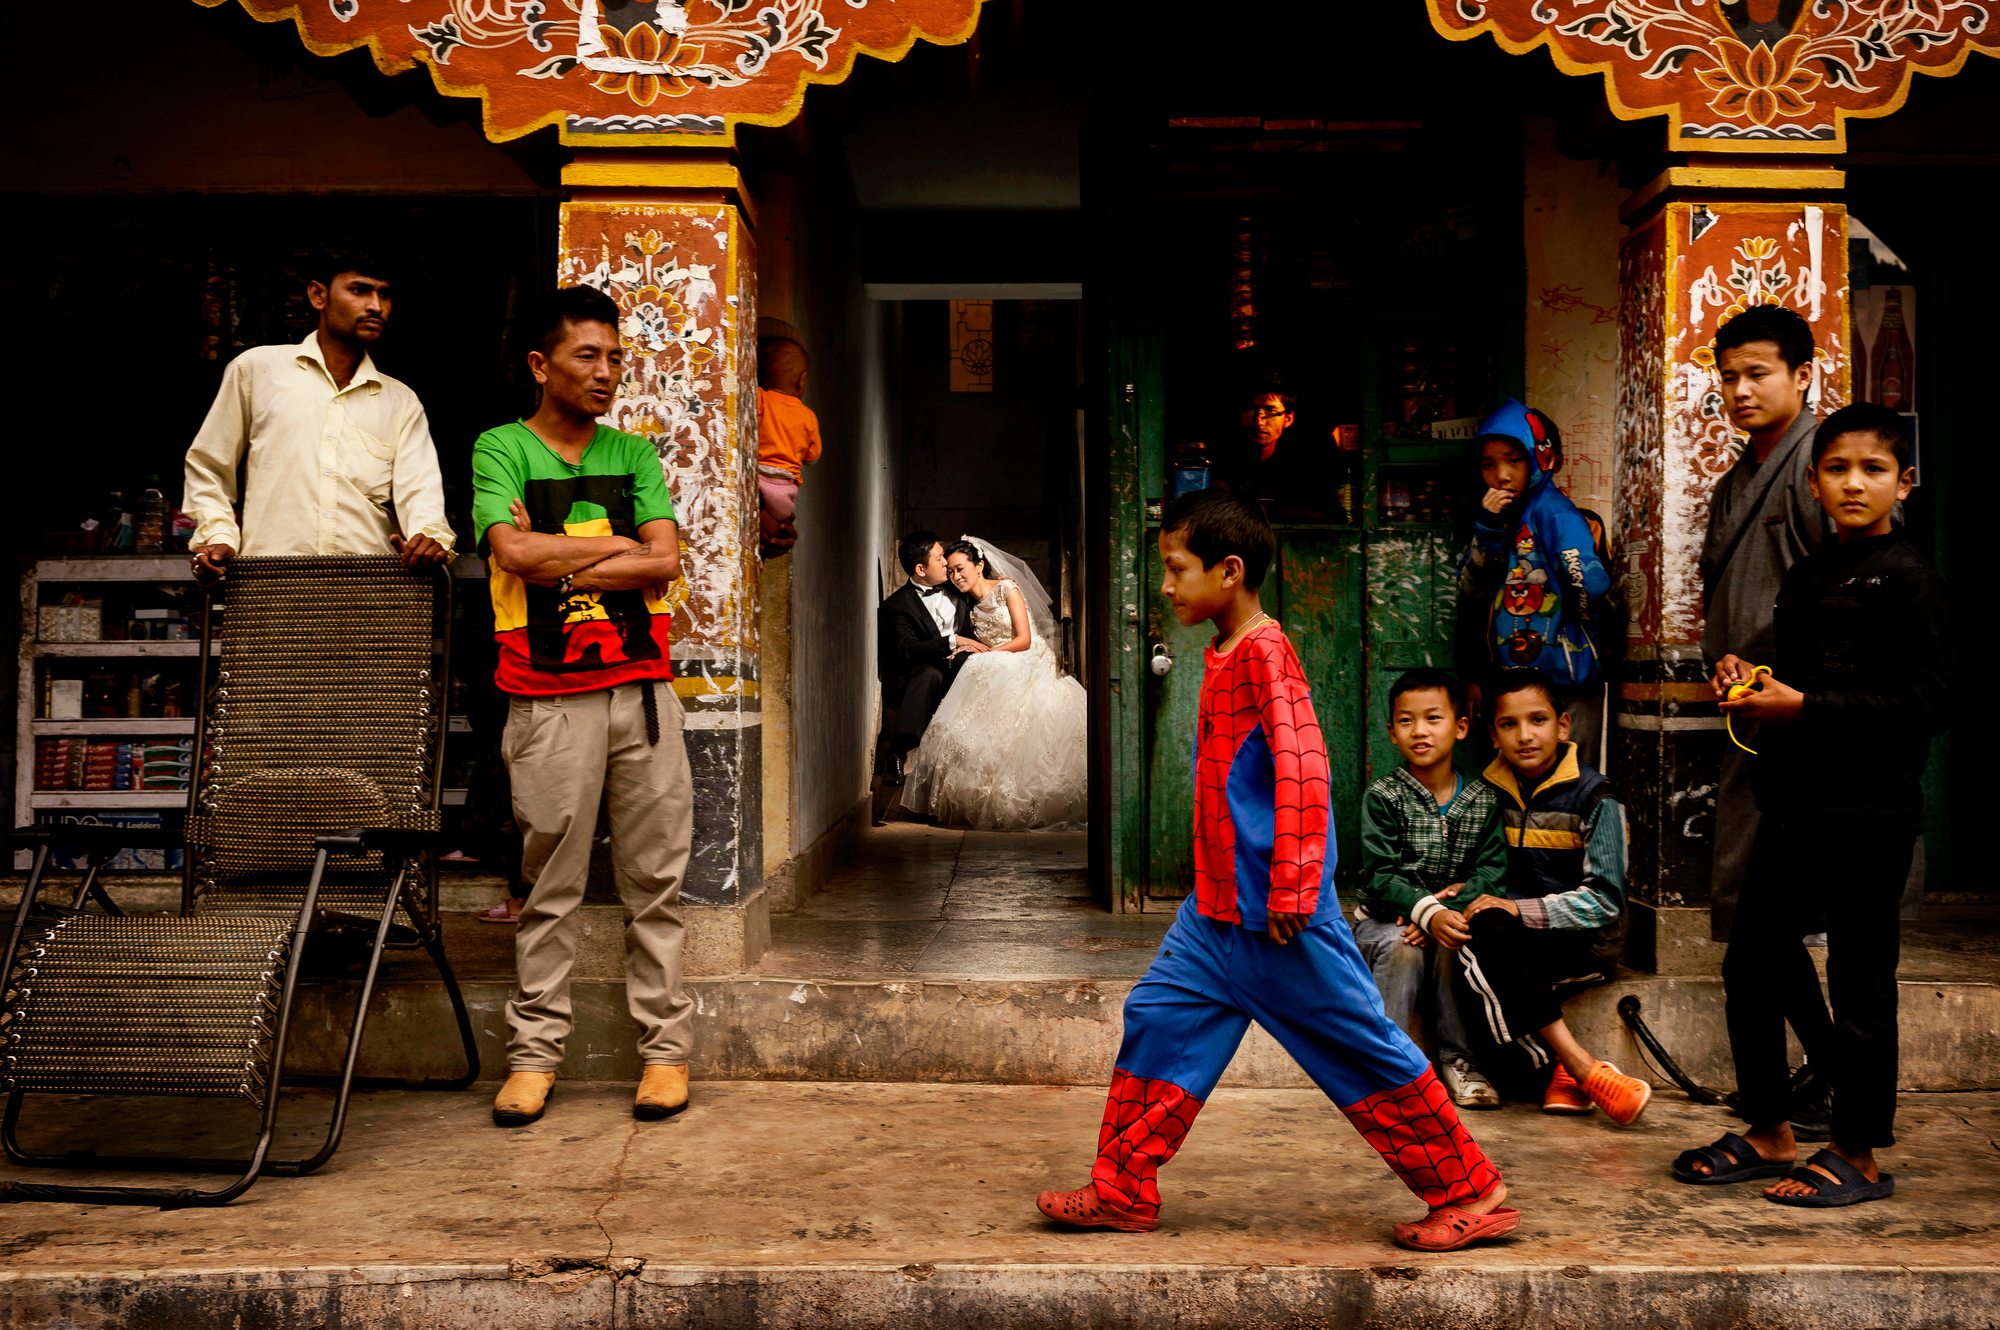 Bride and groom portrait amidst busy street scene in Bhutan - photo by Chrisman Studios